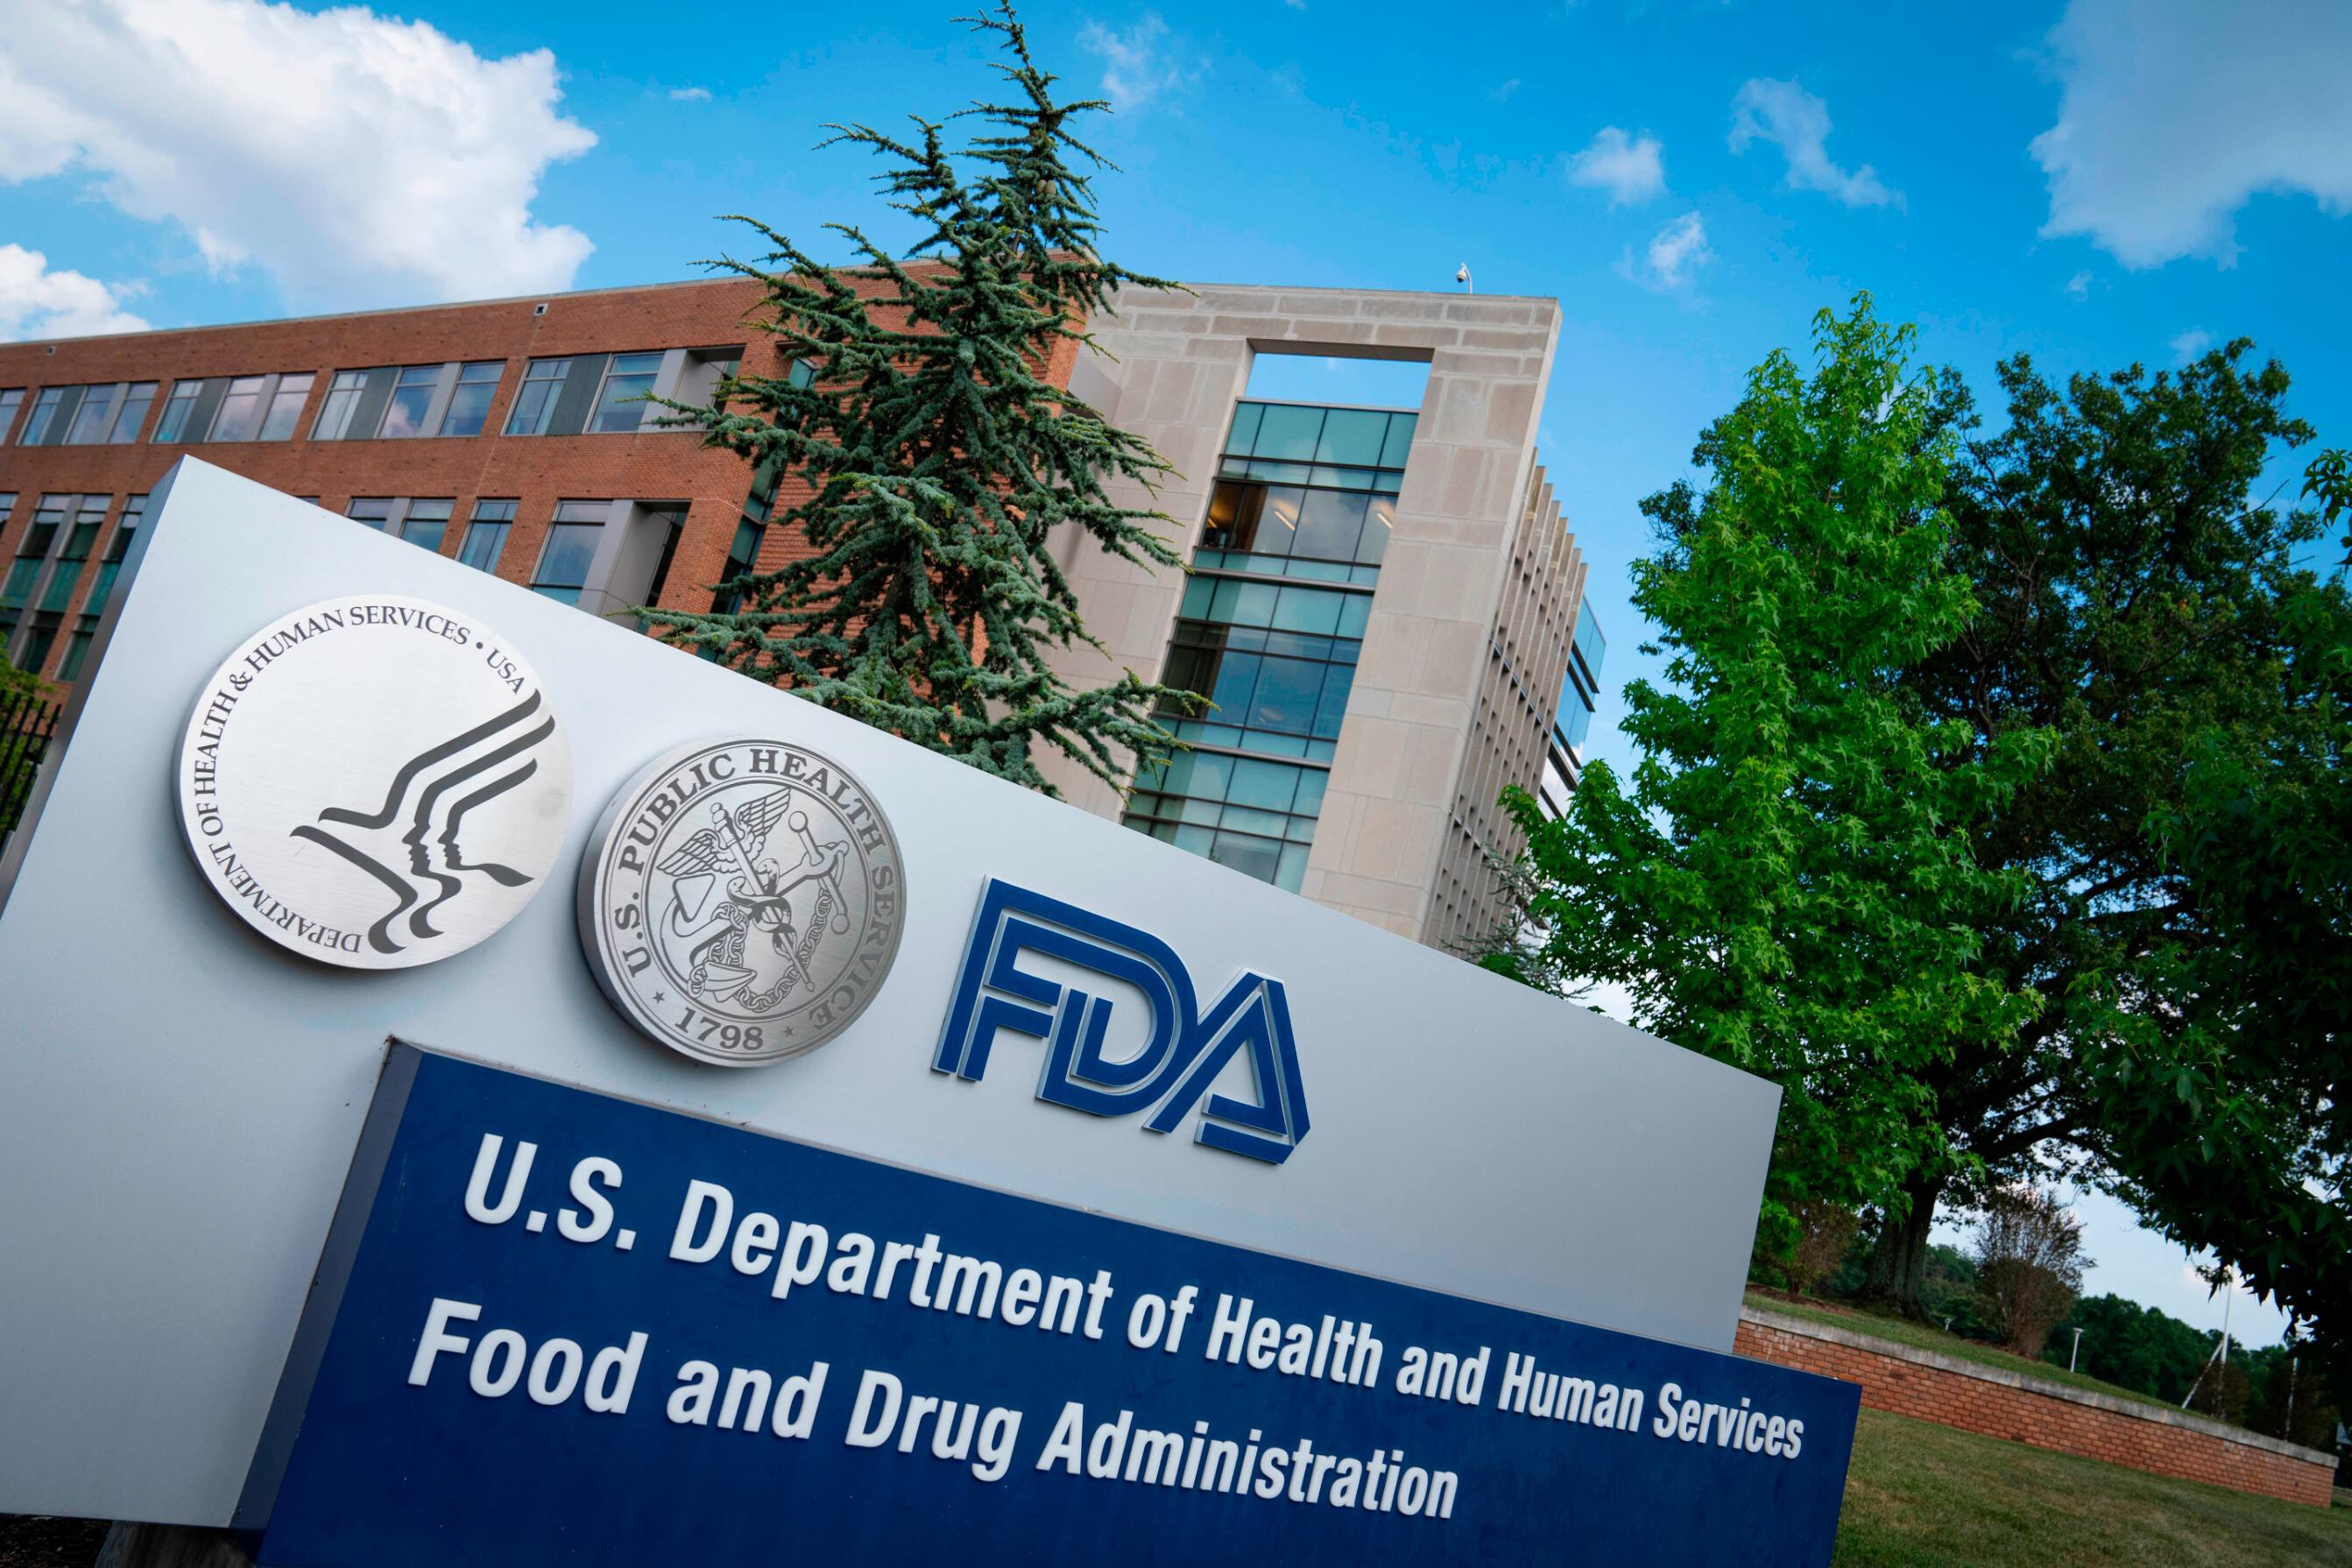 What does it mean for the Pfizer vaccine to have full FDA approval? Our medical expert weighs in